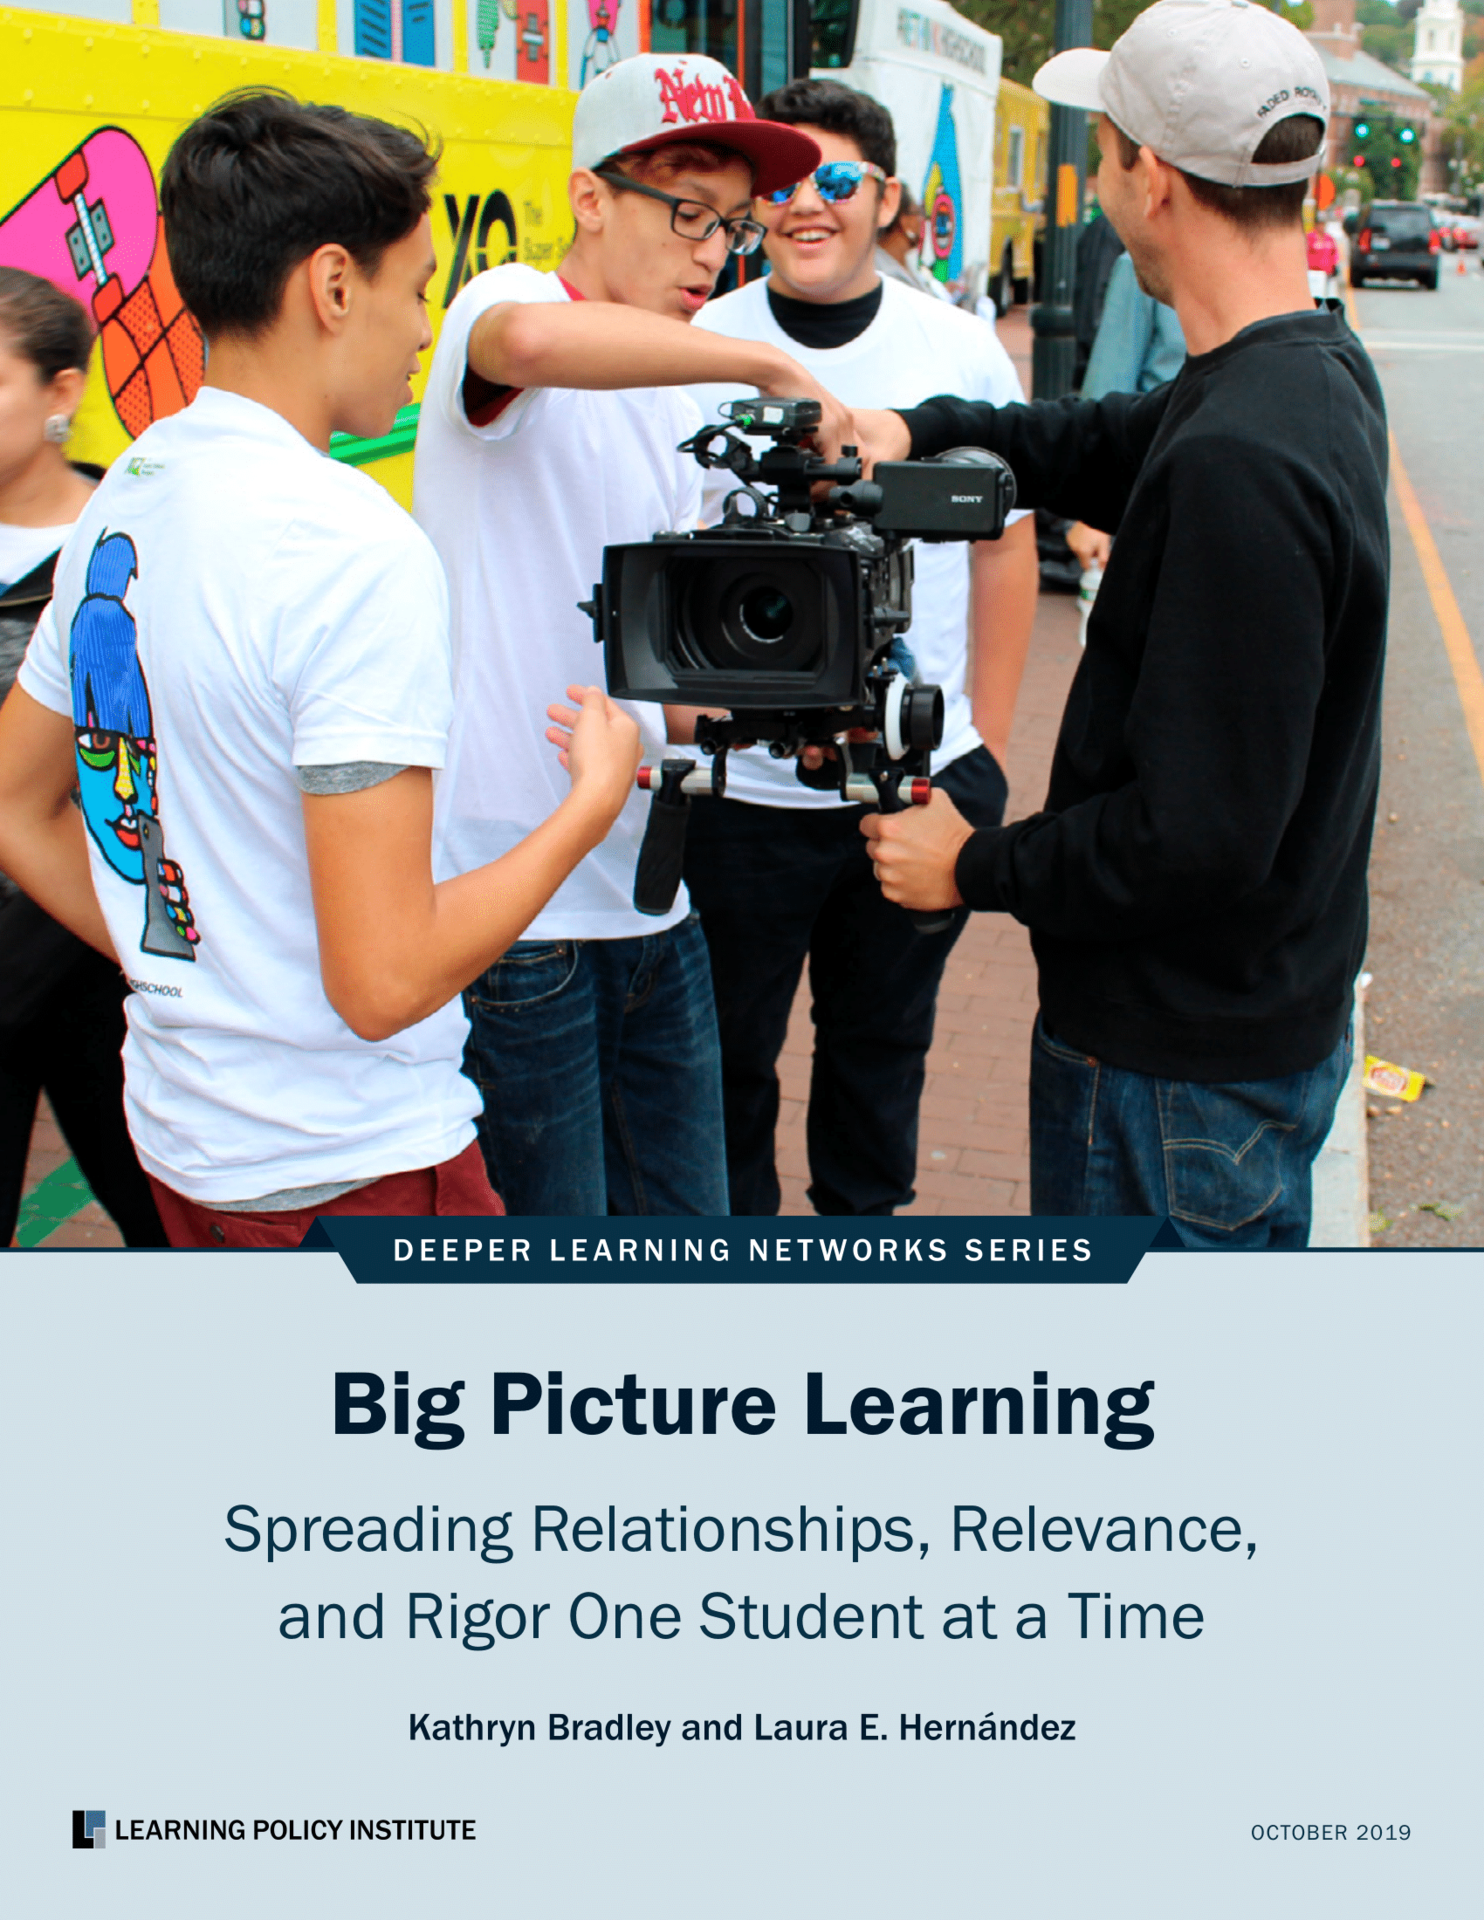 Big Picture Learning Spreading Relationships, Relevence, and Rigor One Student at a Time